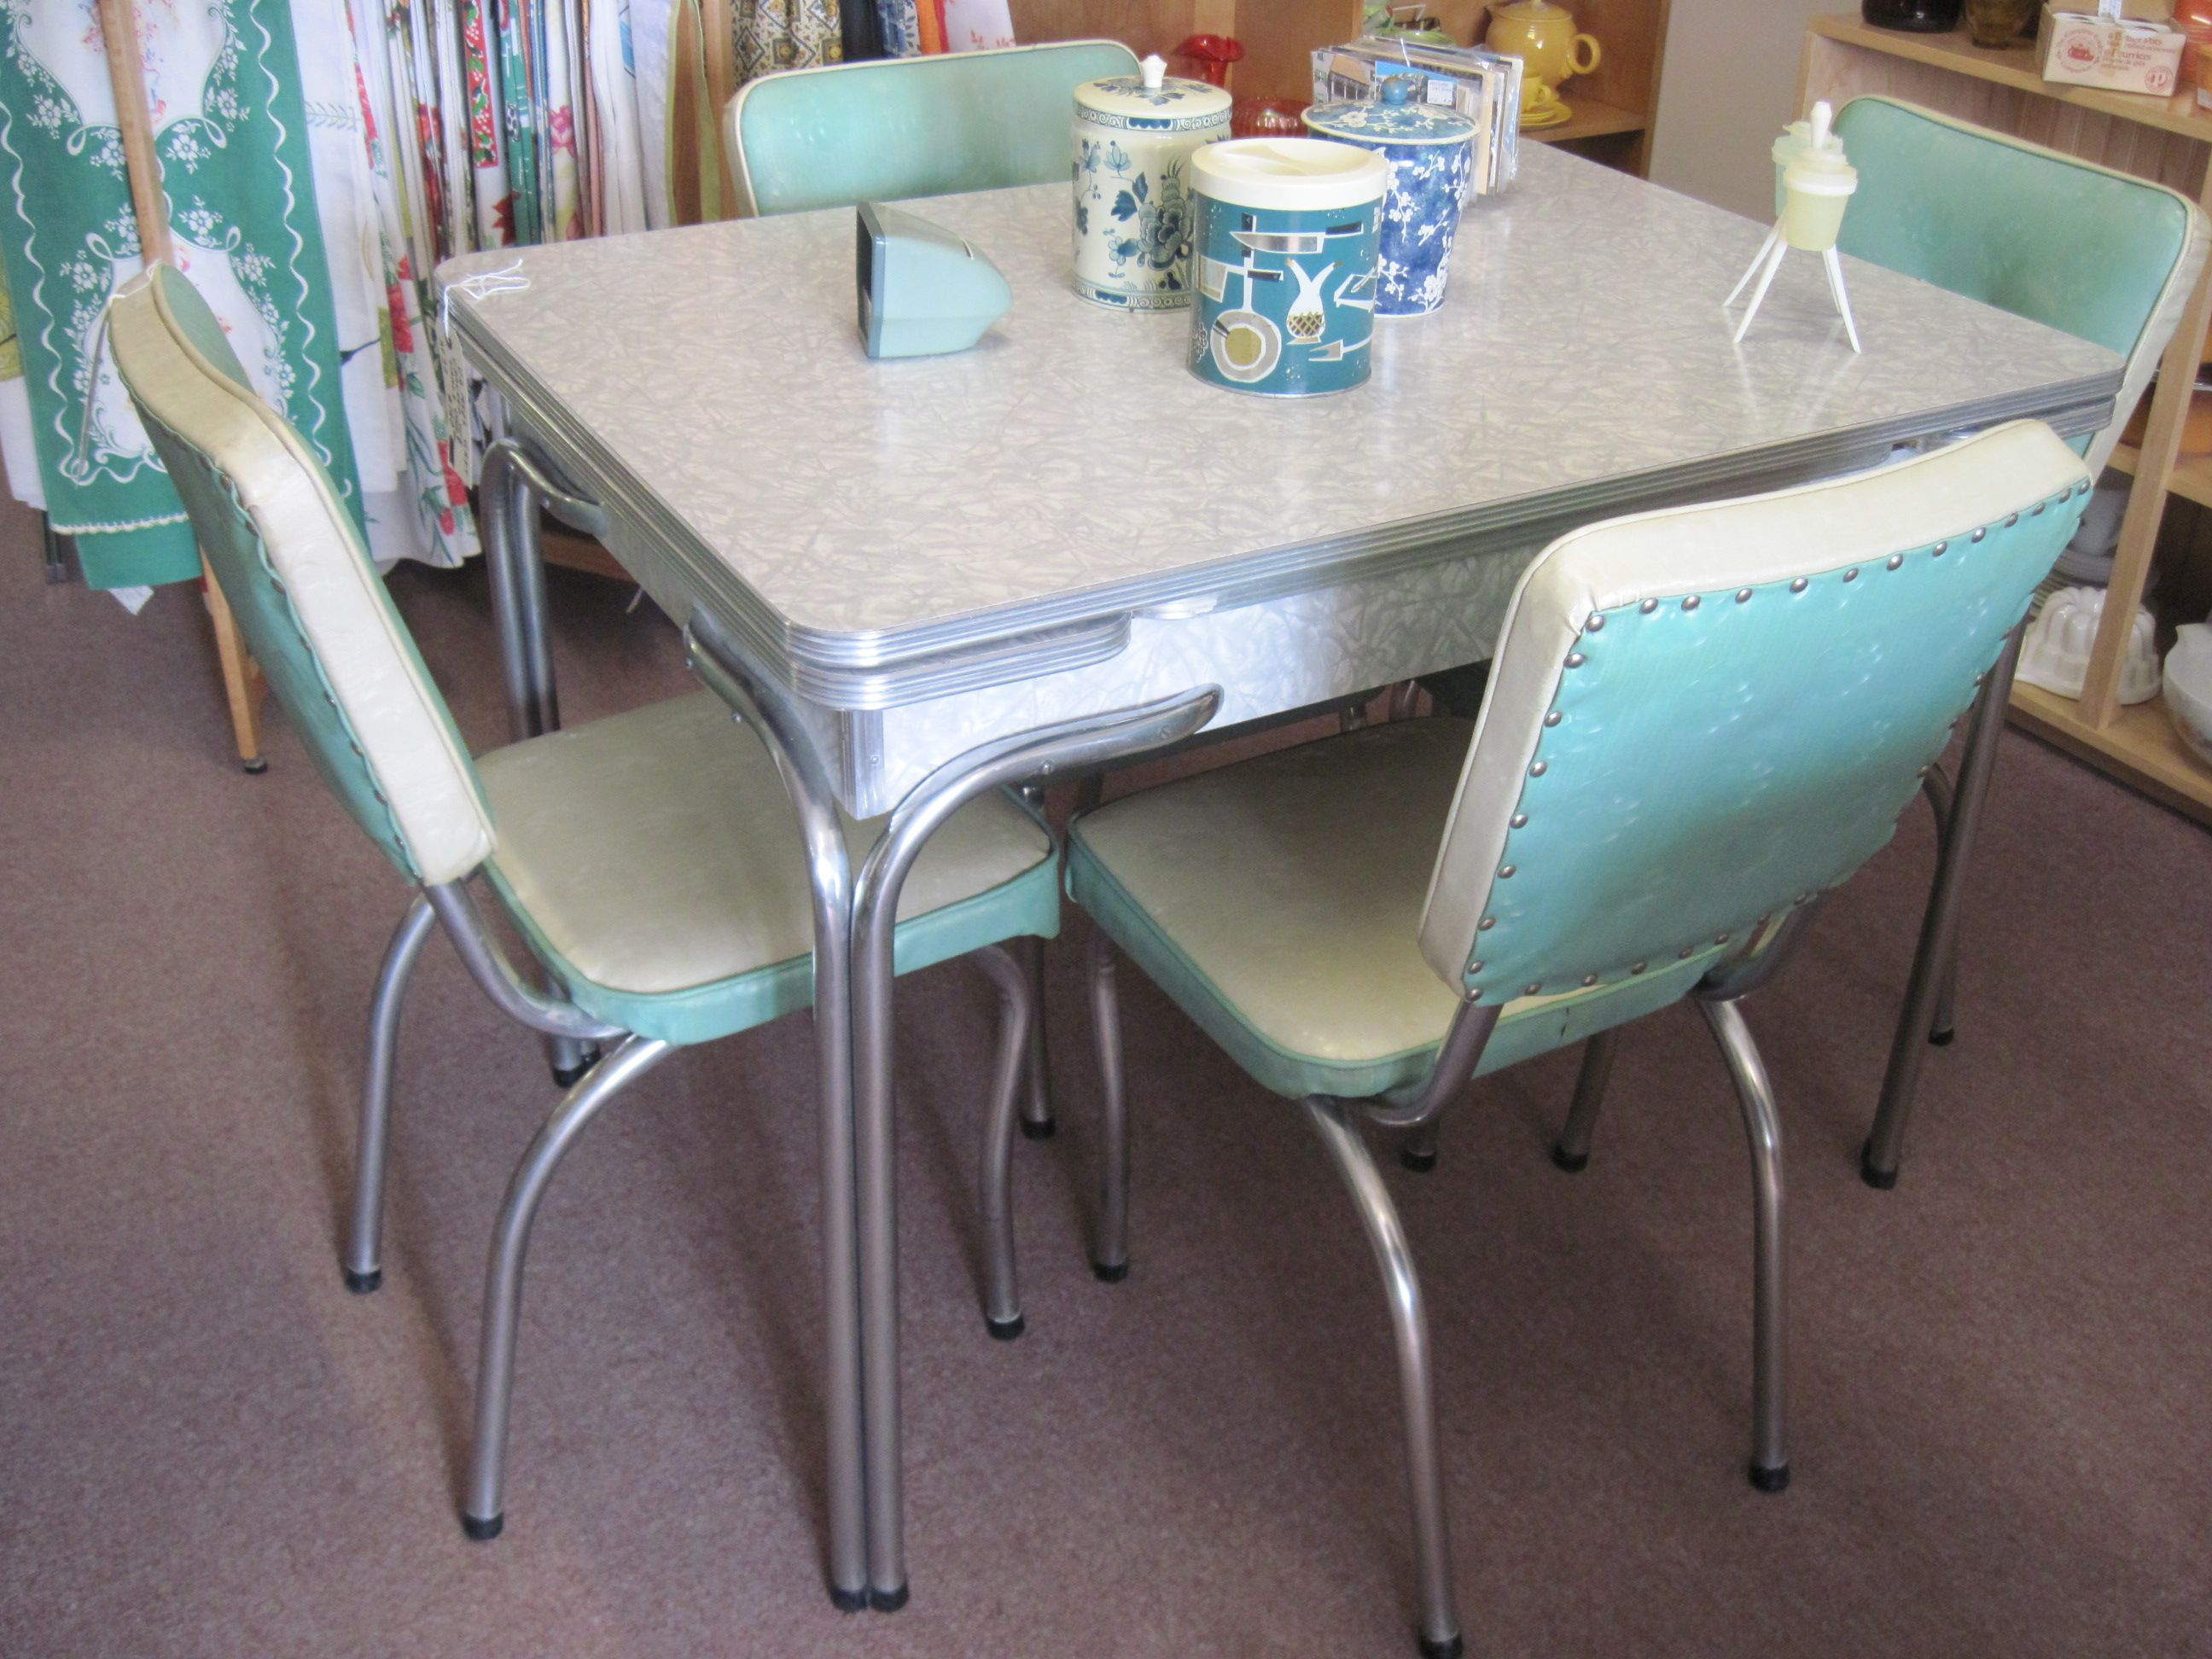 Cracked ice table and chairs vintage kitchen pinterest for Dinette sets with bench seating